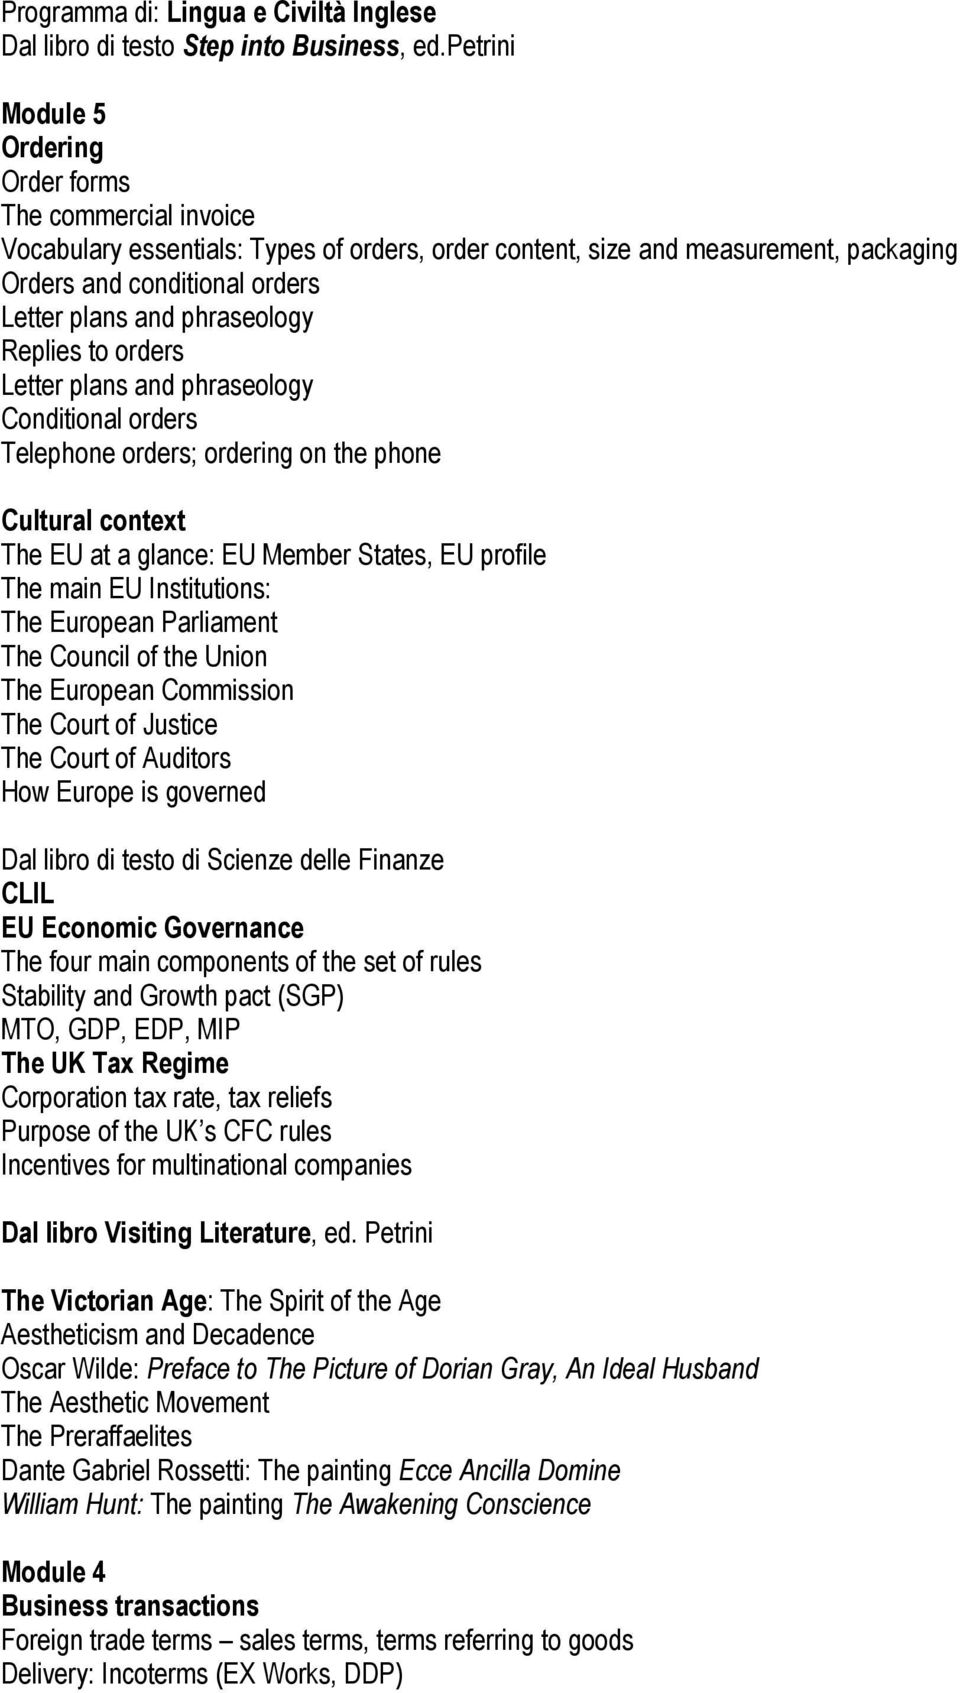 phraseology Replies to orders Letter plans and phraseology Conditional orders Telephone orders; ordering on the phone Cultural context The EU at a glance: EU Member States, EU profile The main EU